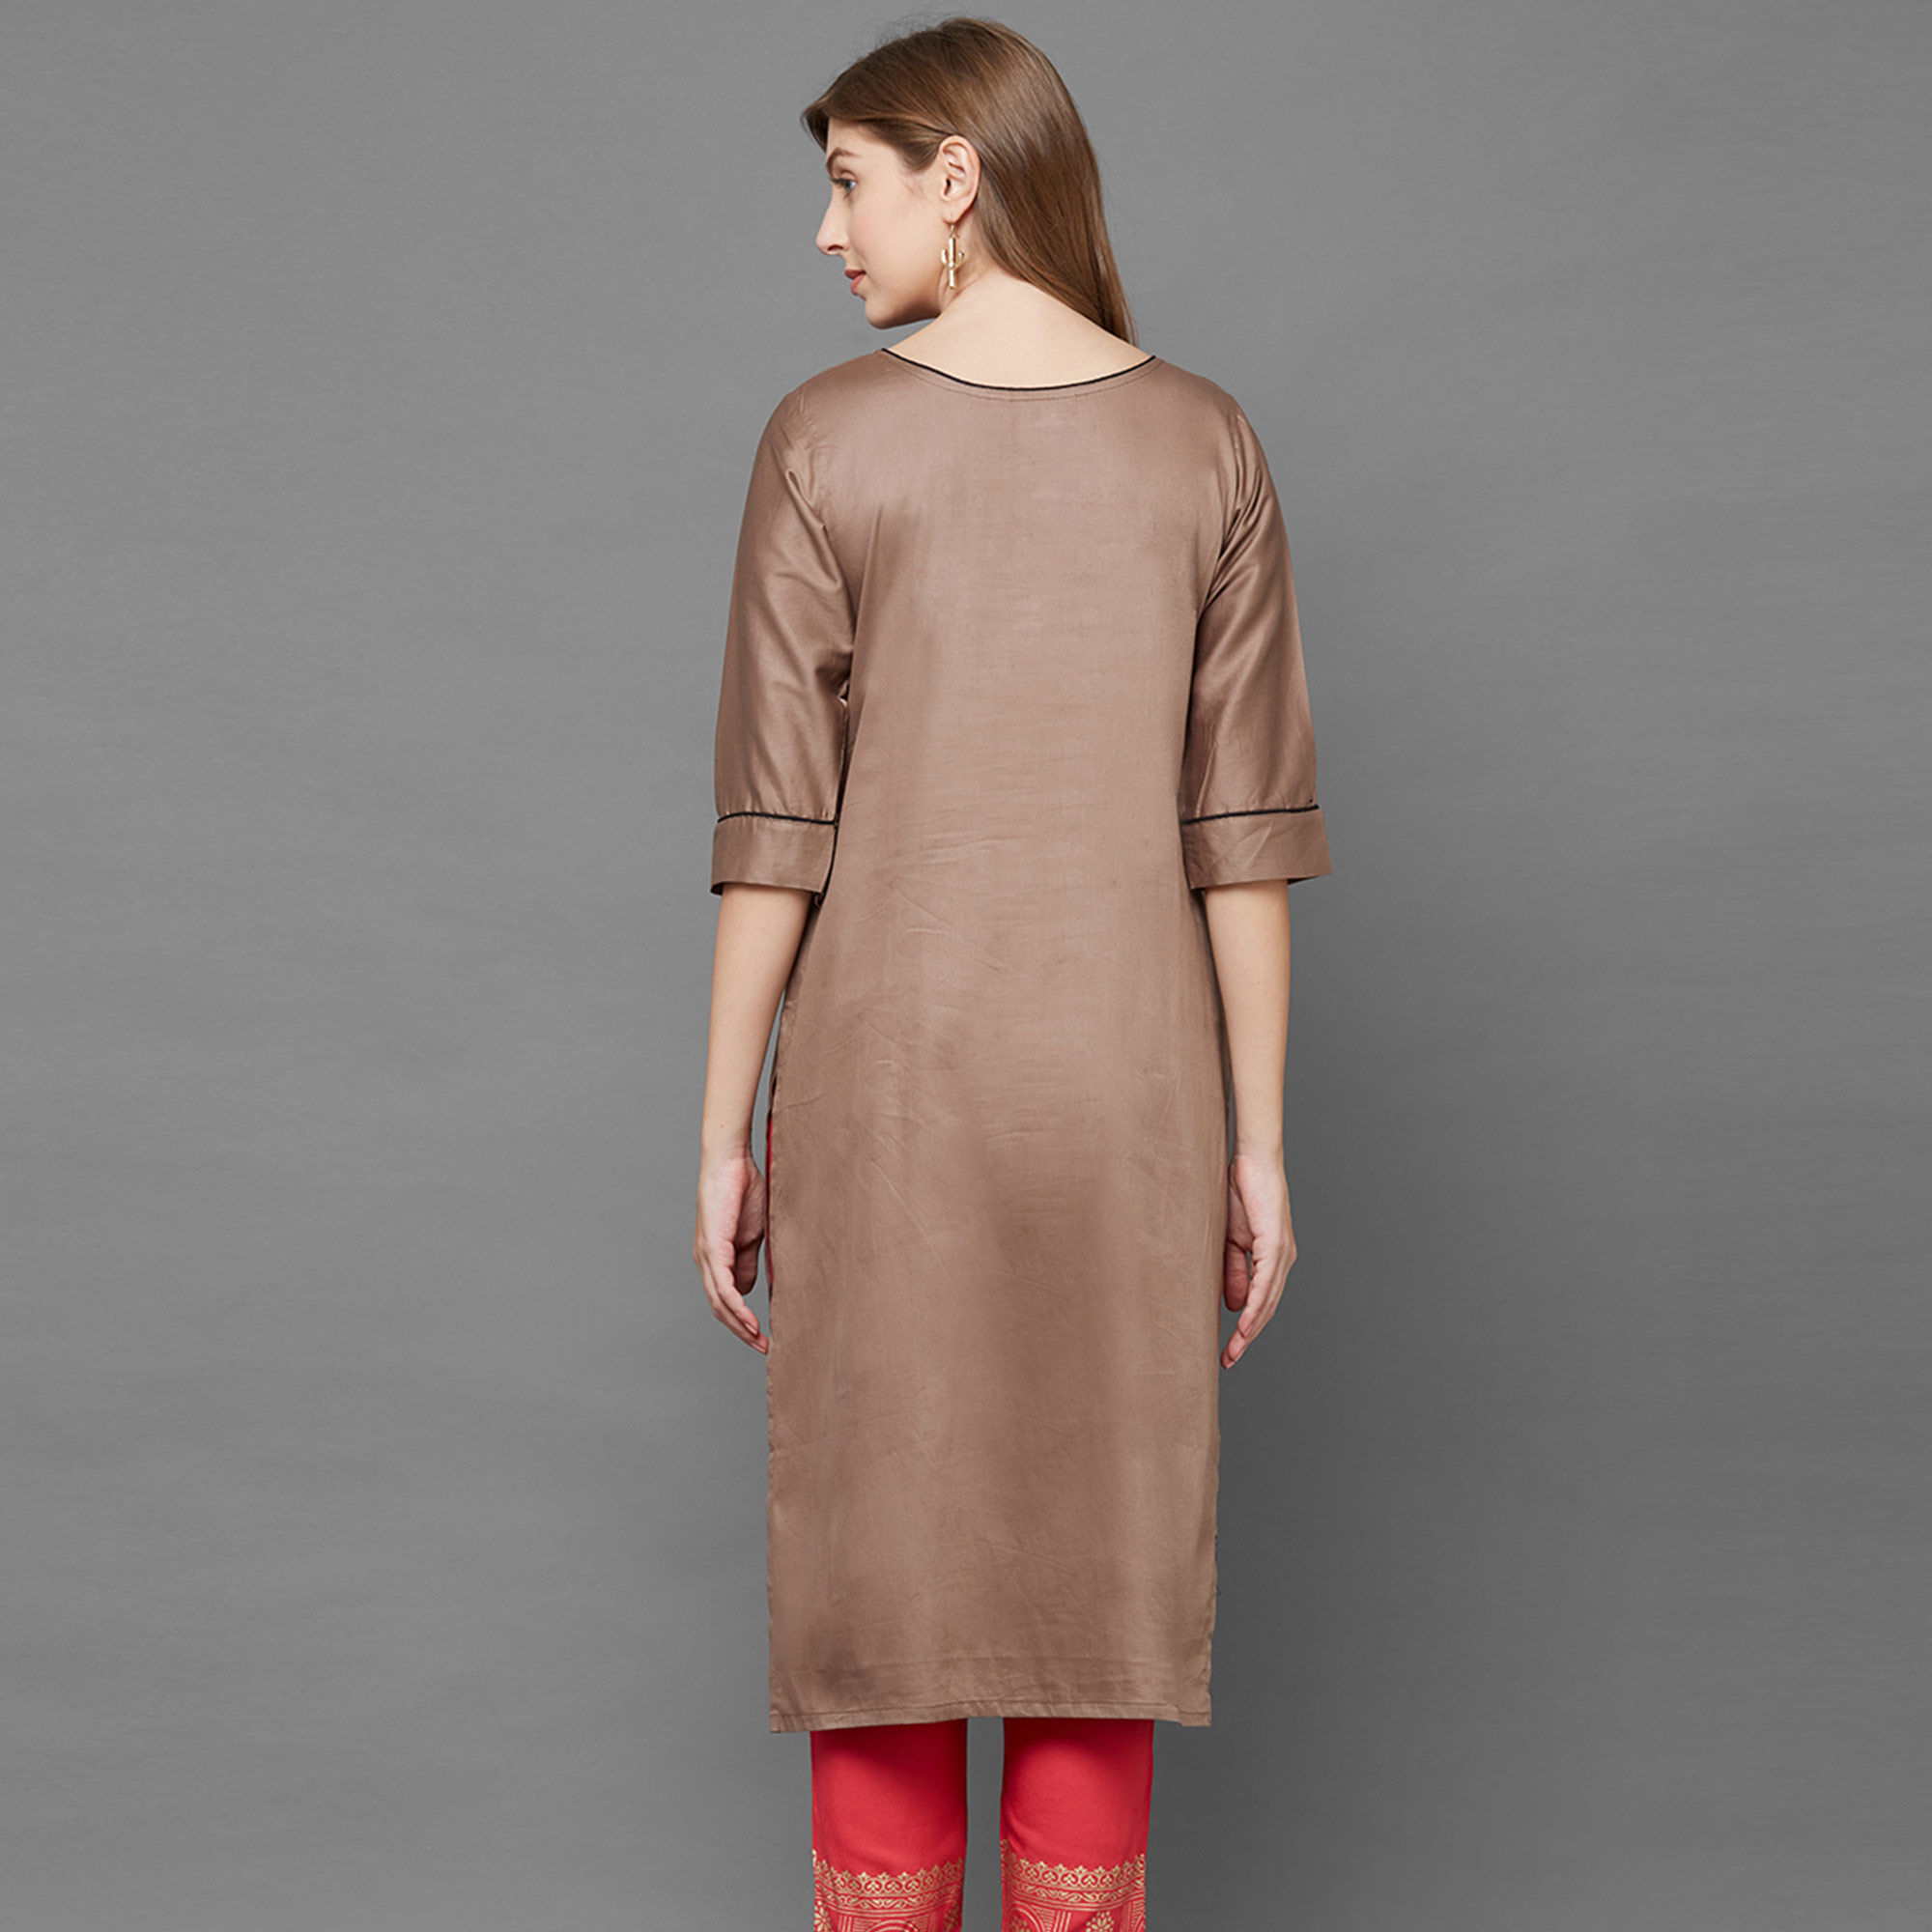 Exotic Brown Colored Casual Hand Embroidered Rayon Kurti